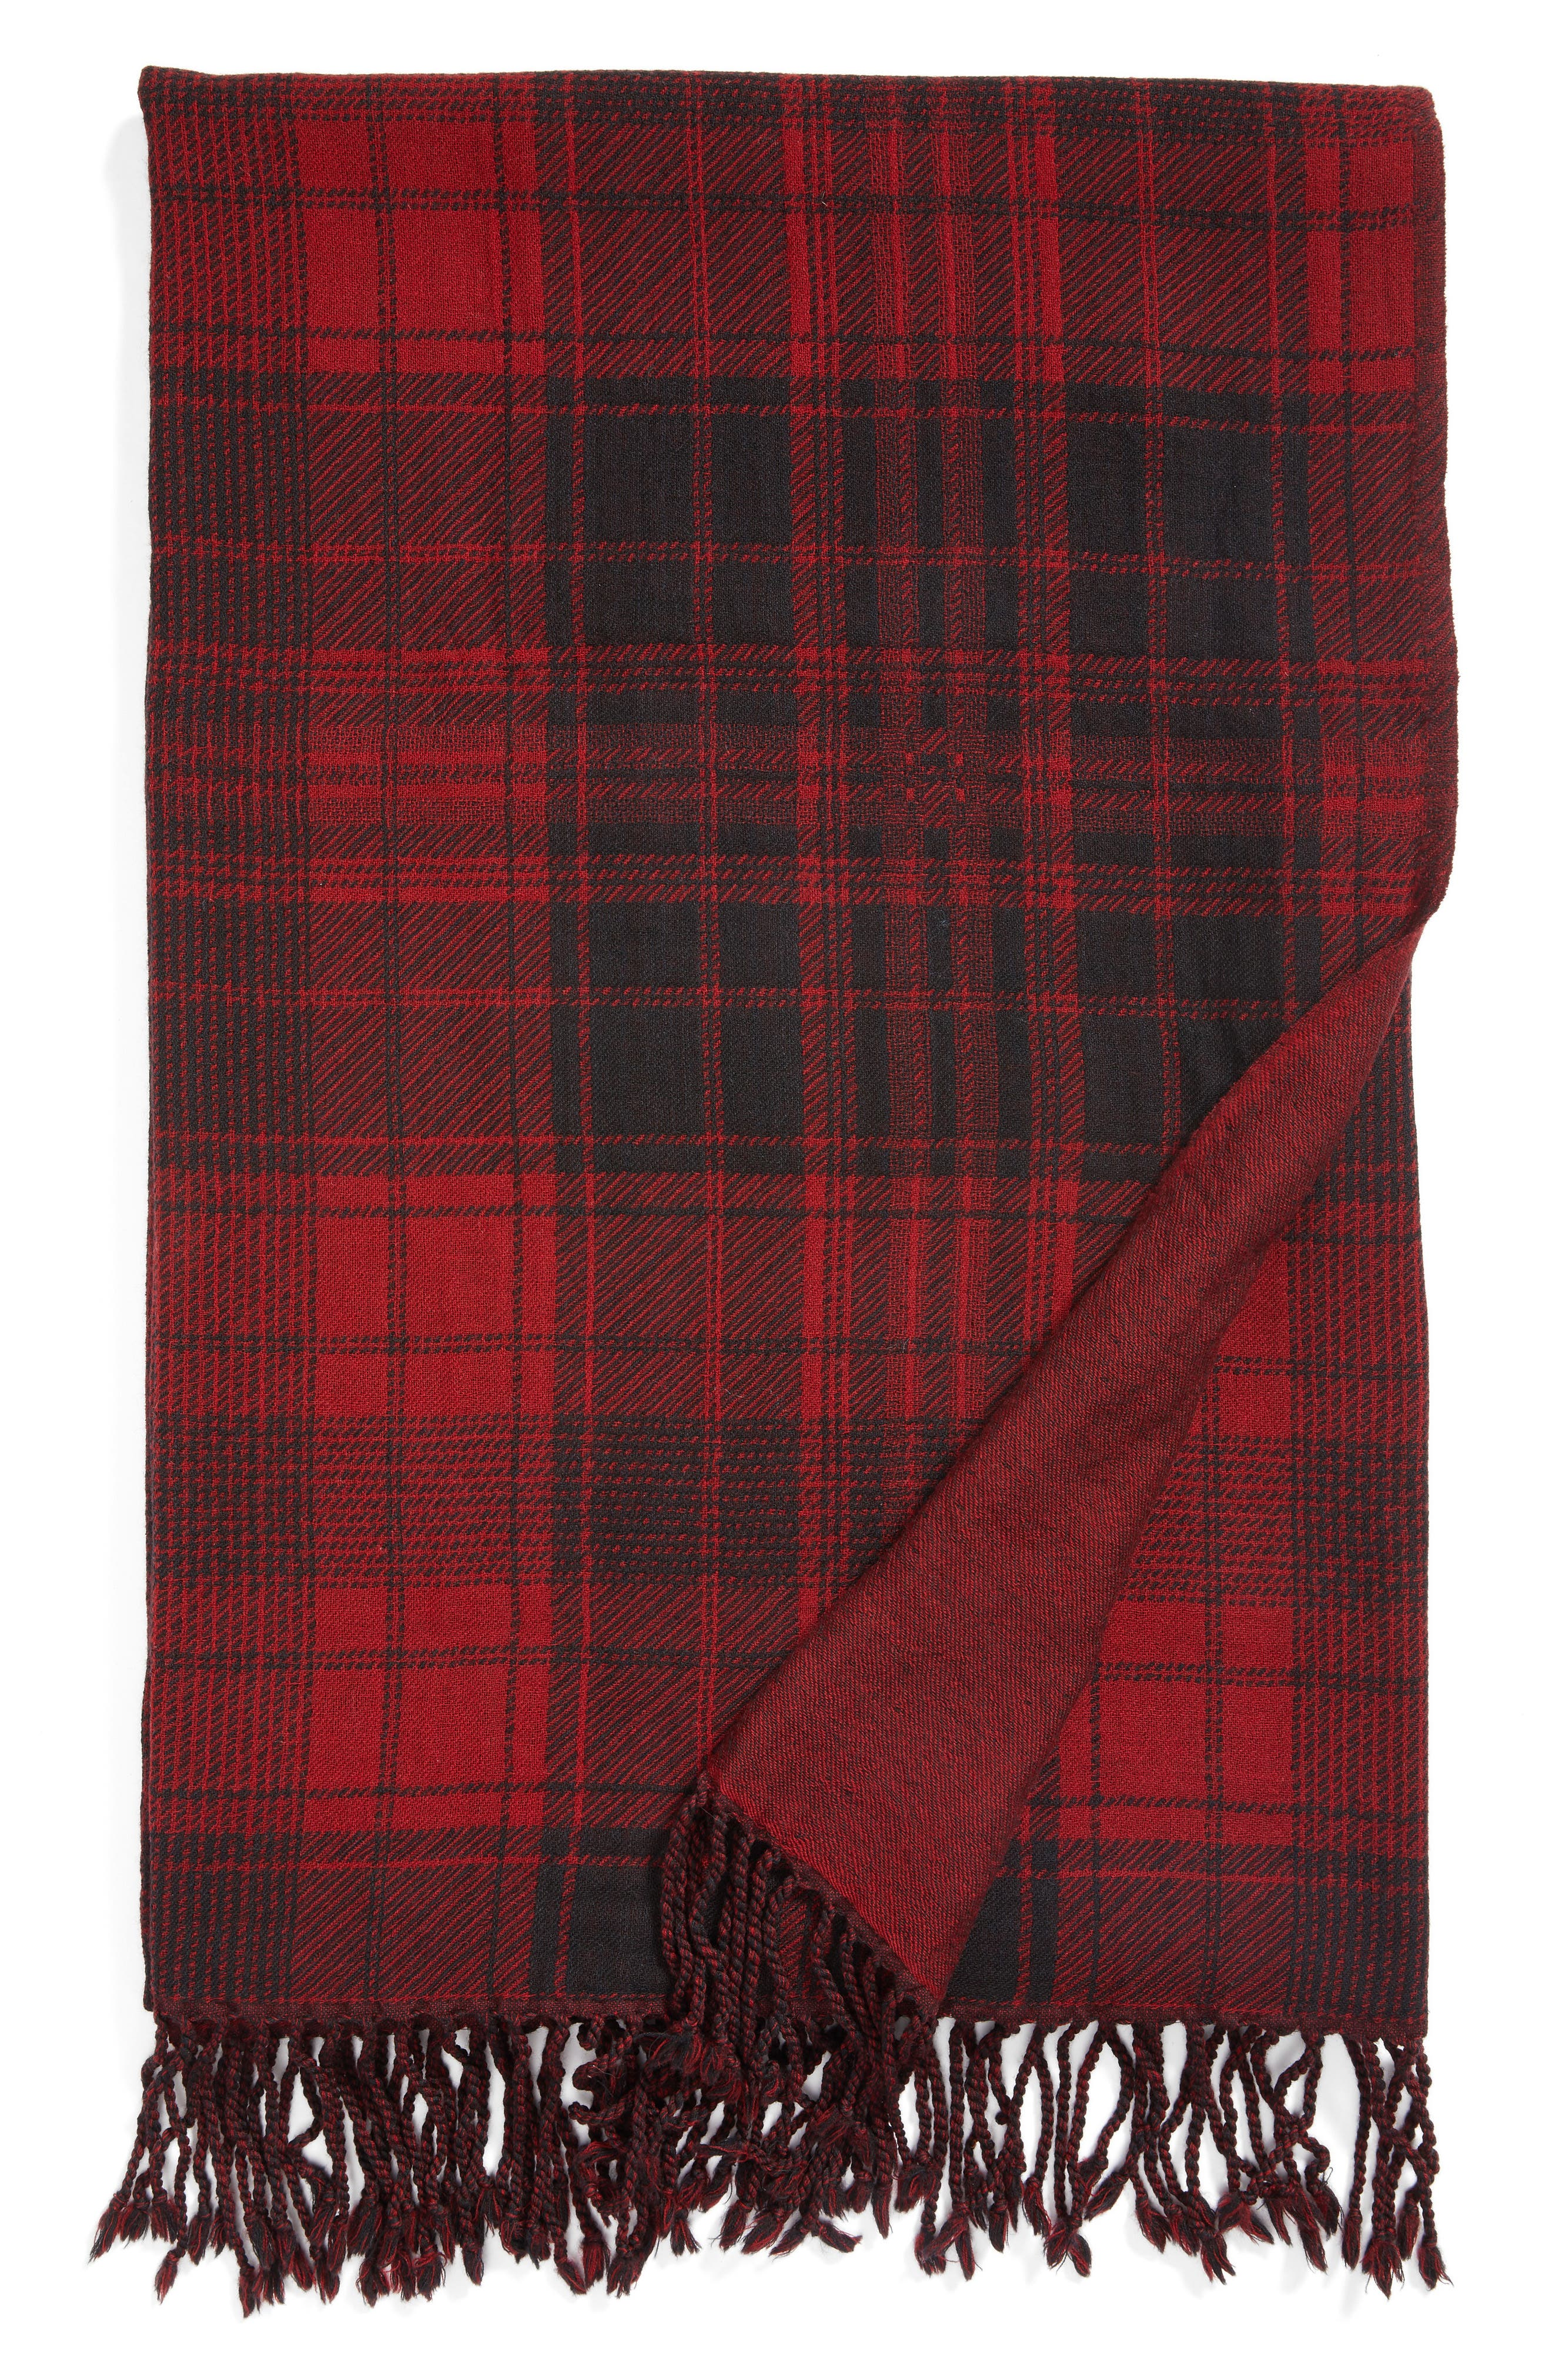 Plaid Double Face Merino Wool Throw,                             Main thumbnail 1, color,                             RED BLACK BLANKET PLAID